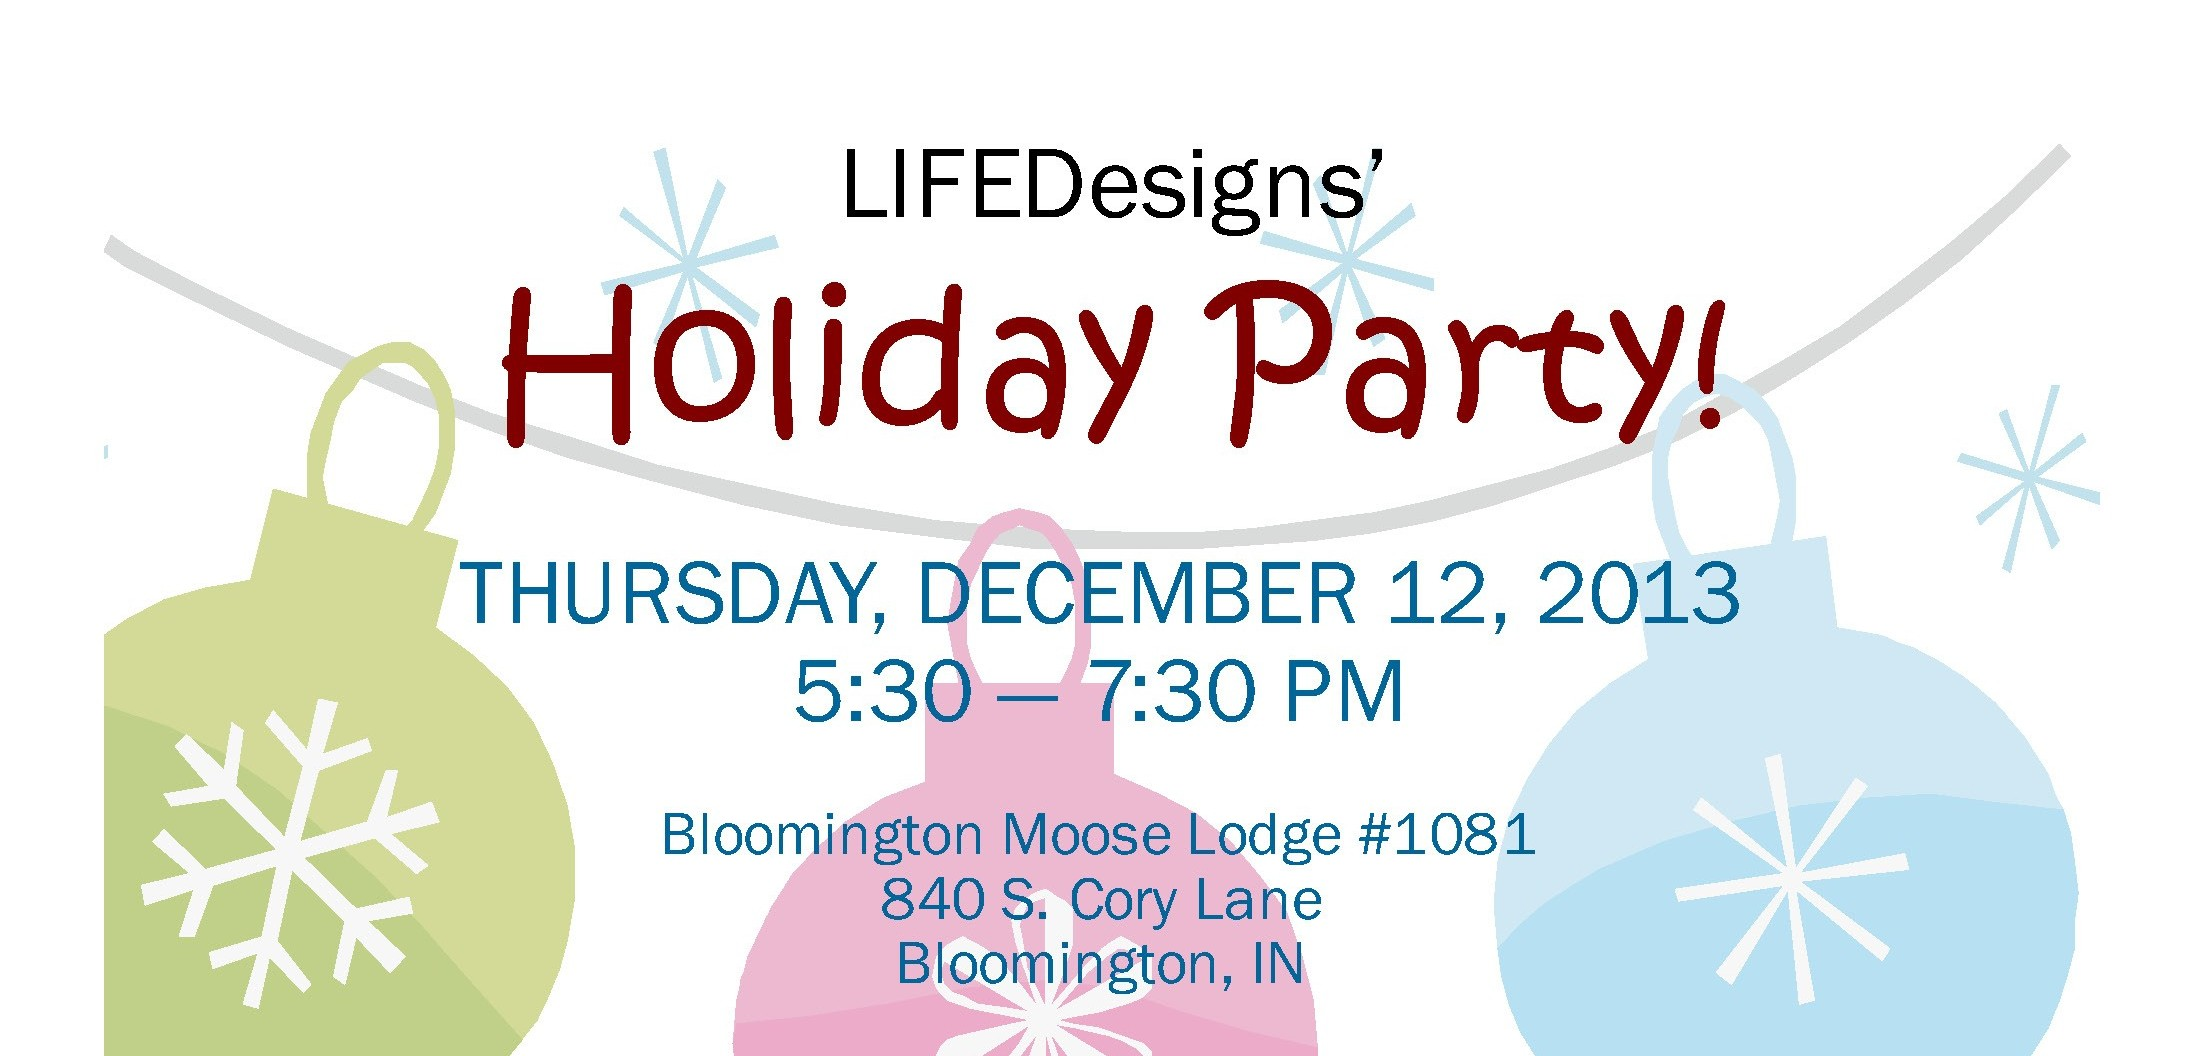 LIFEDesigns' Holiday Party Invite 2013-4